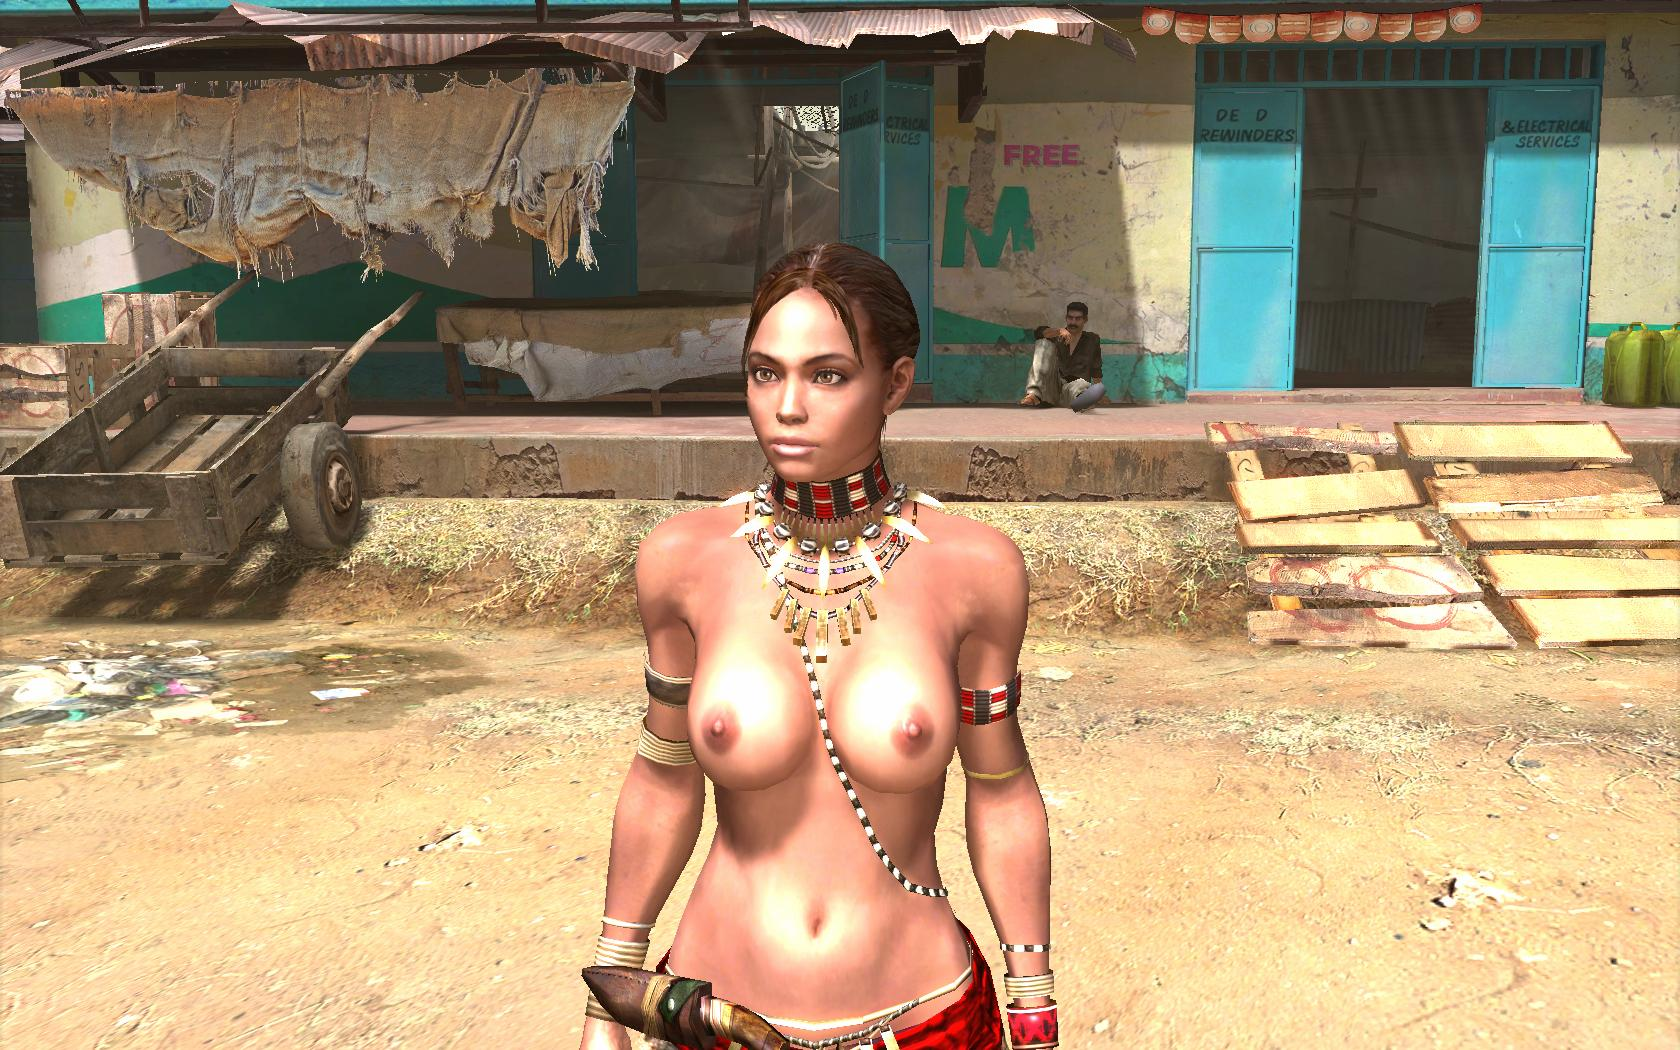 Resident evil 5 hot sheva tits naked streaming